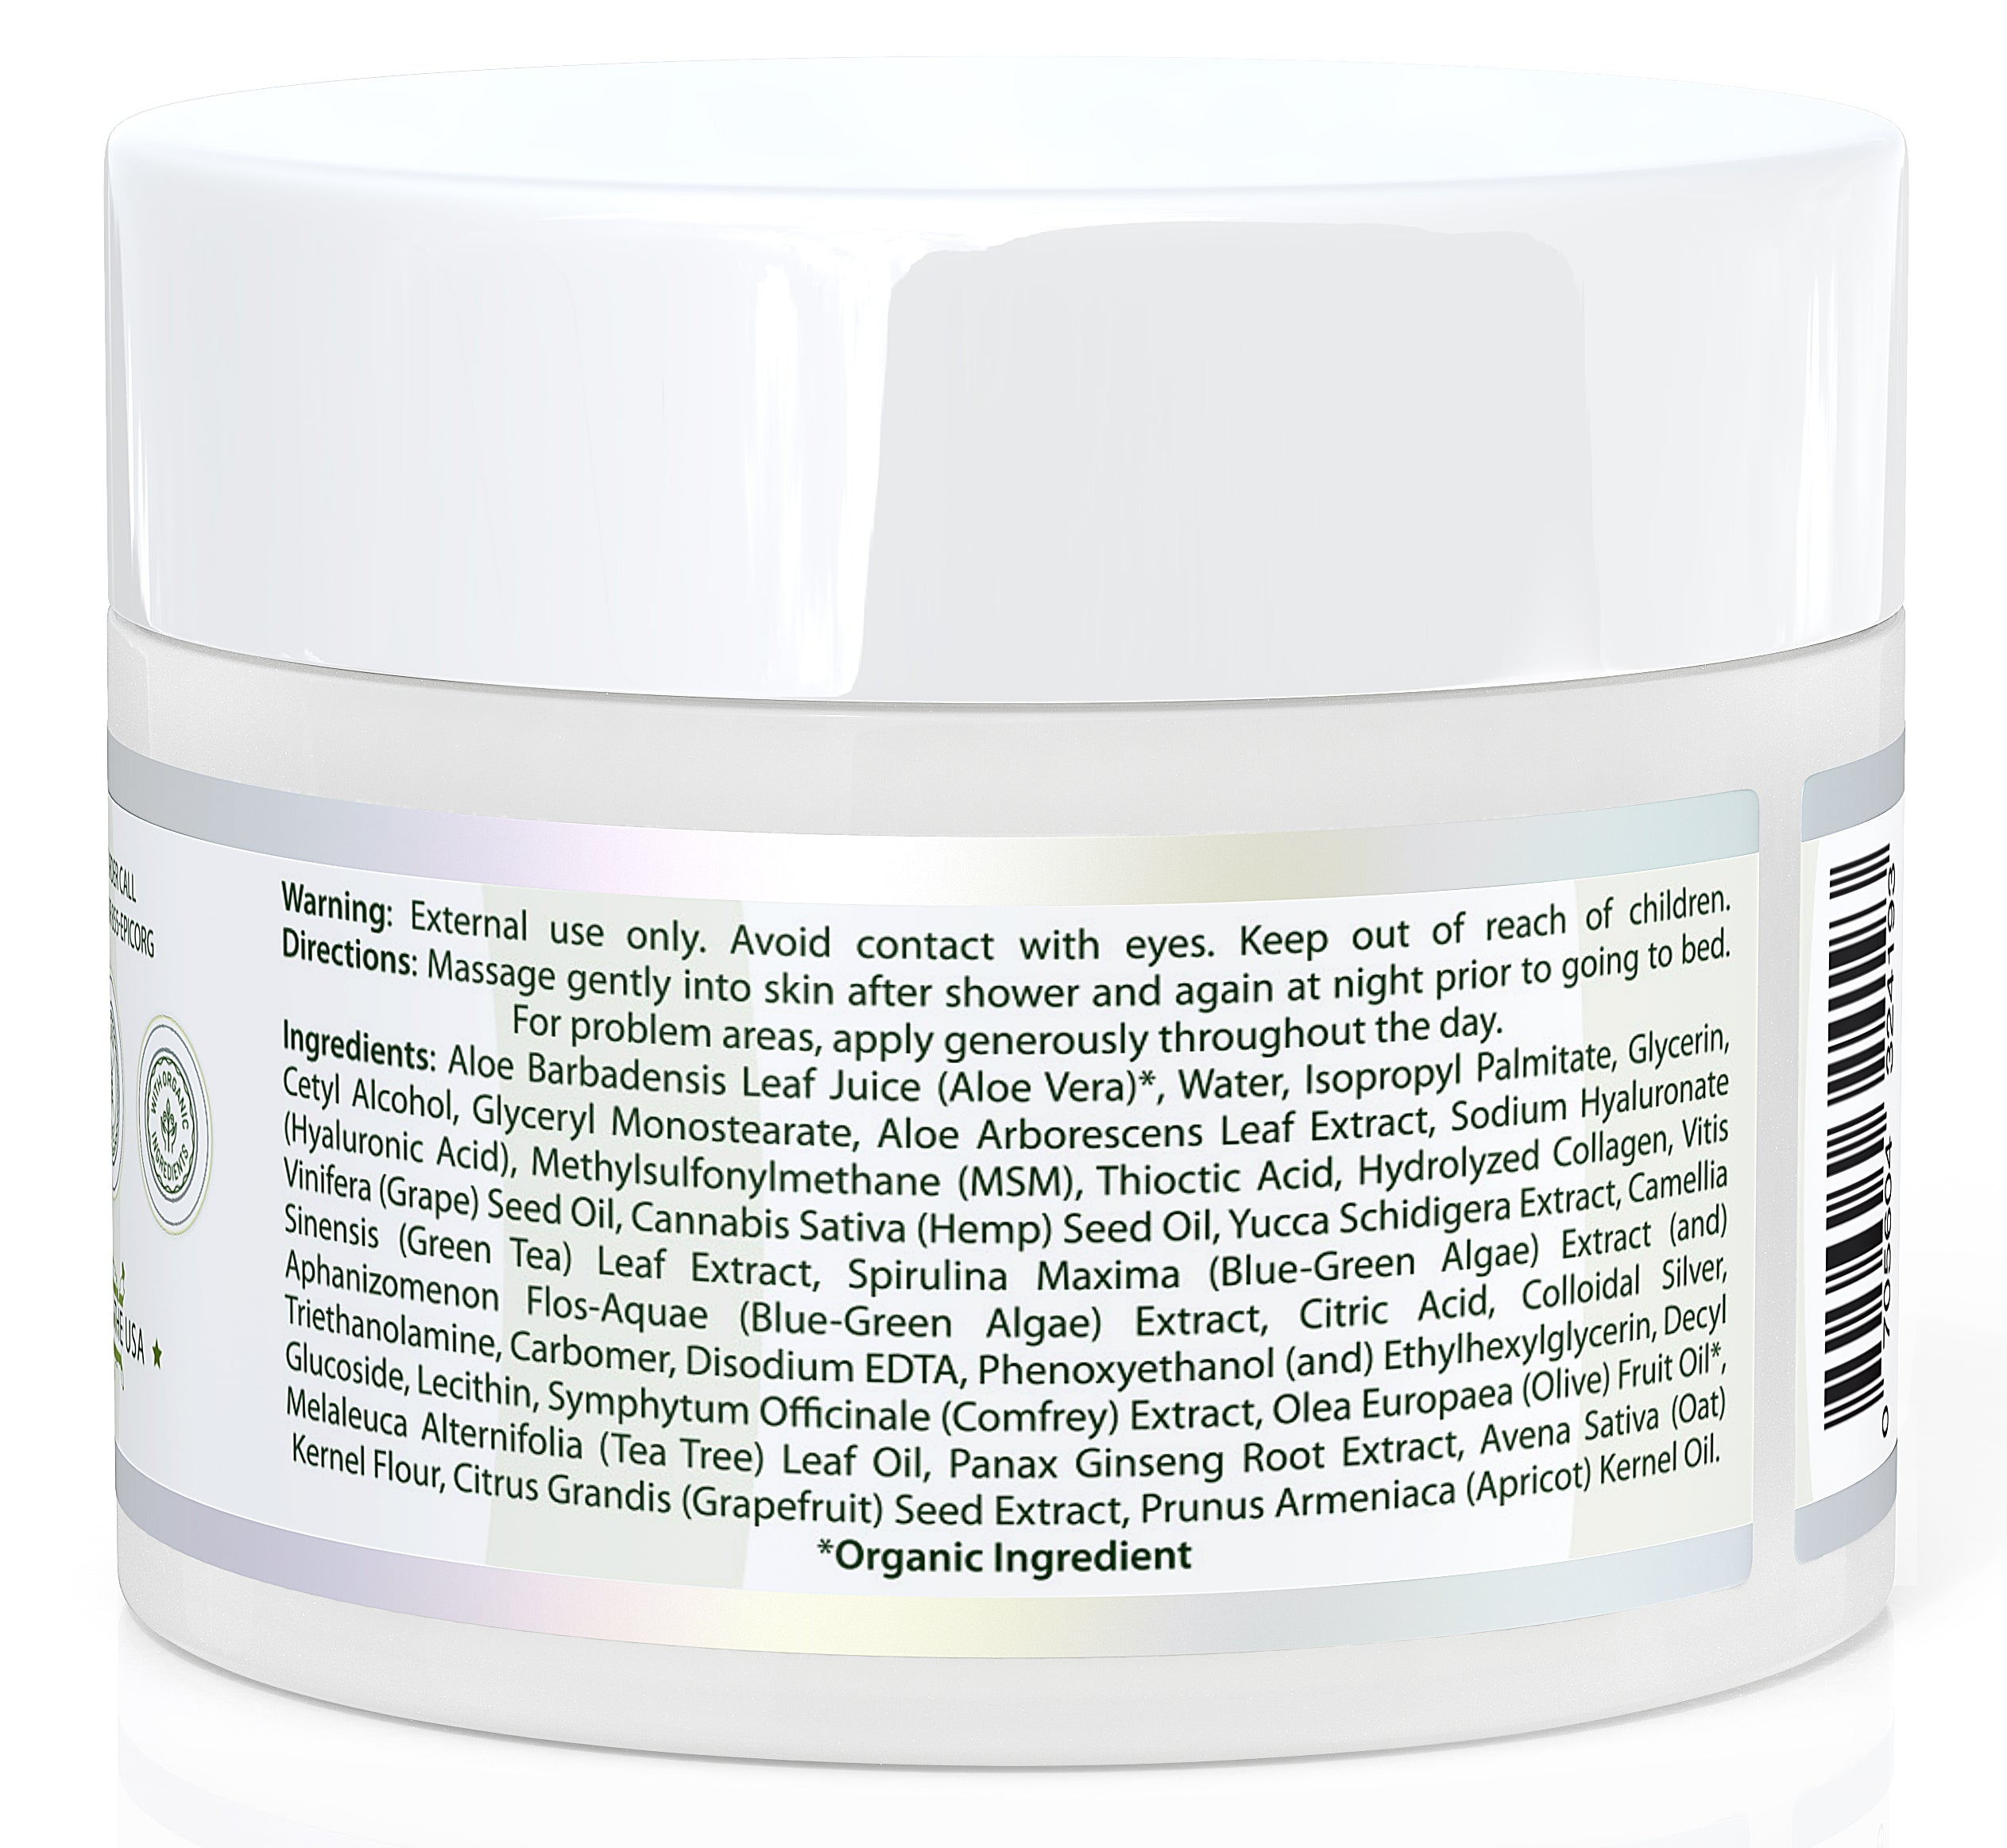 EpicOrganic Aloe Vera Based Moisturizer For Face And Body 8 oz. Jar